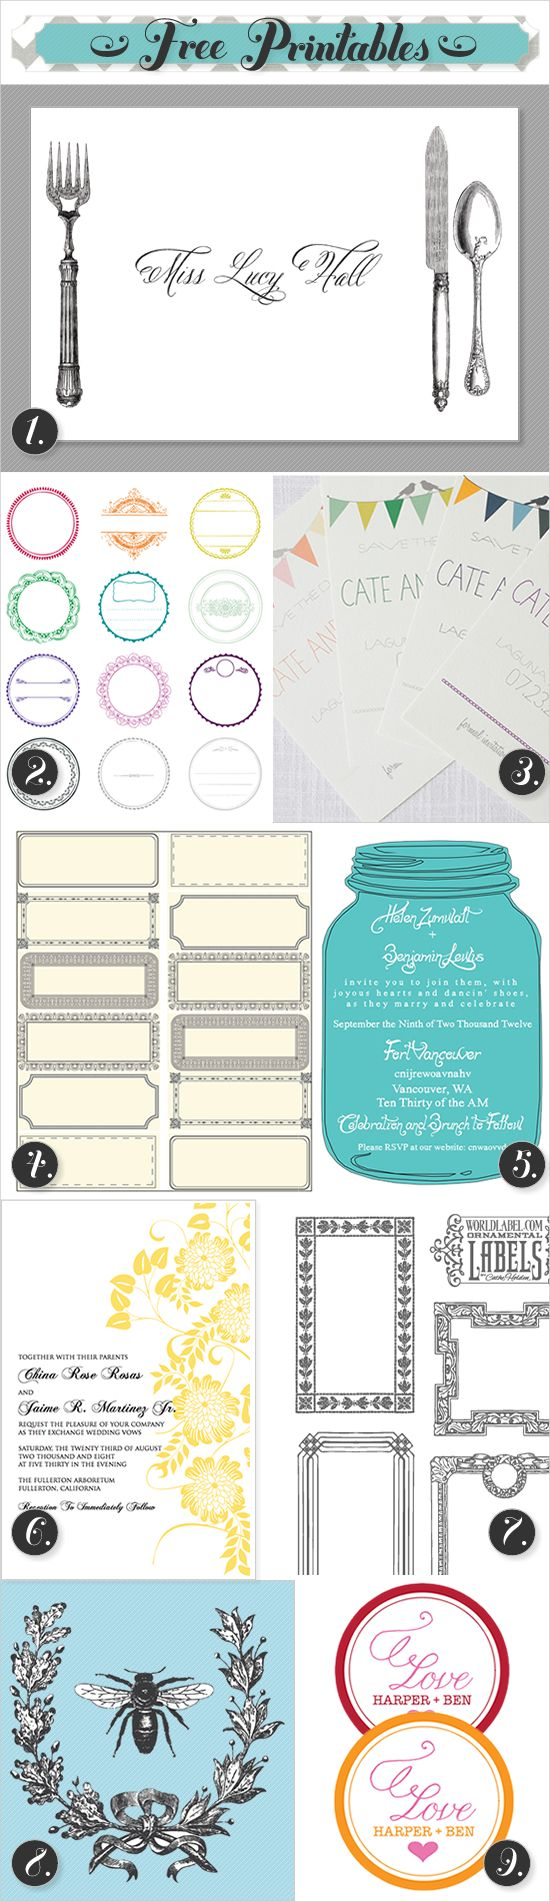 tons of our favoritesWedding Programs, Printables Templates, Printable Labels, Download Templates, Freeprintables, Free Printables Invitations, Mason Jars, Printables Labels, Parties Printables